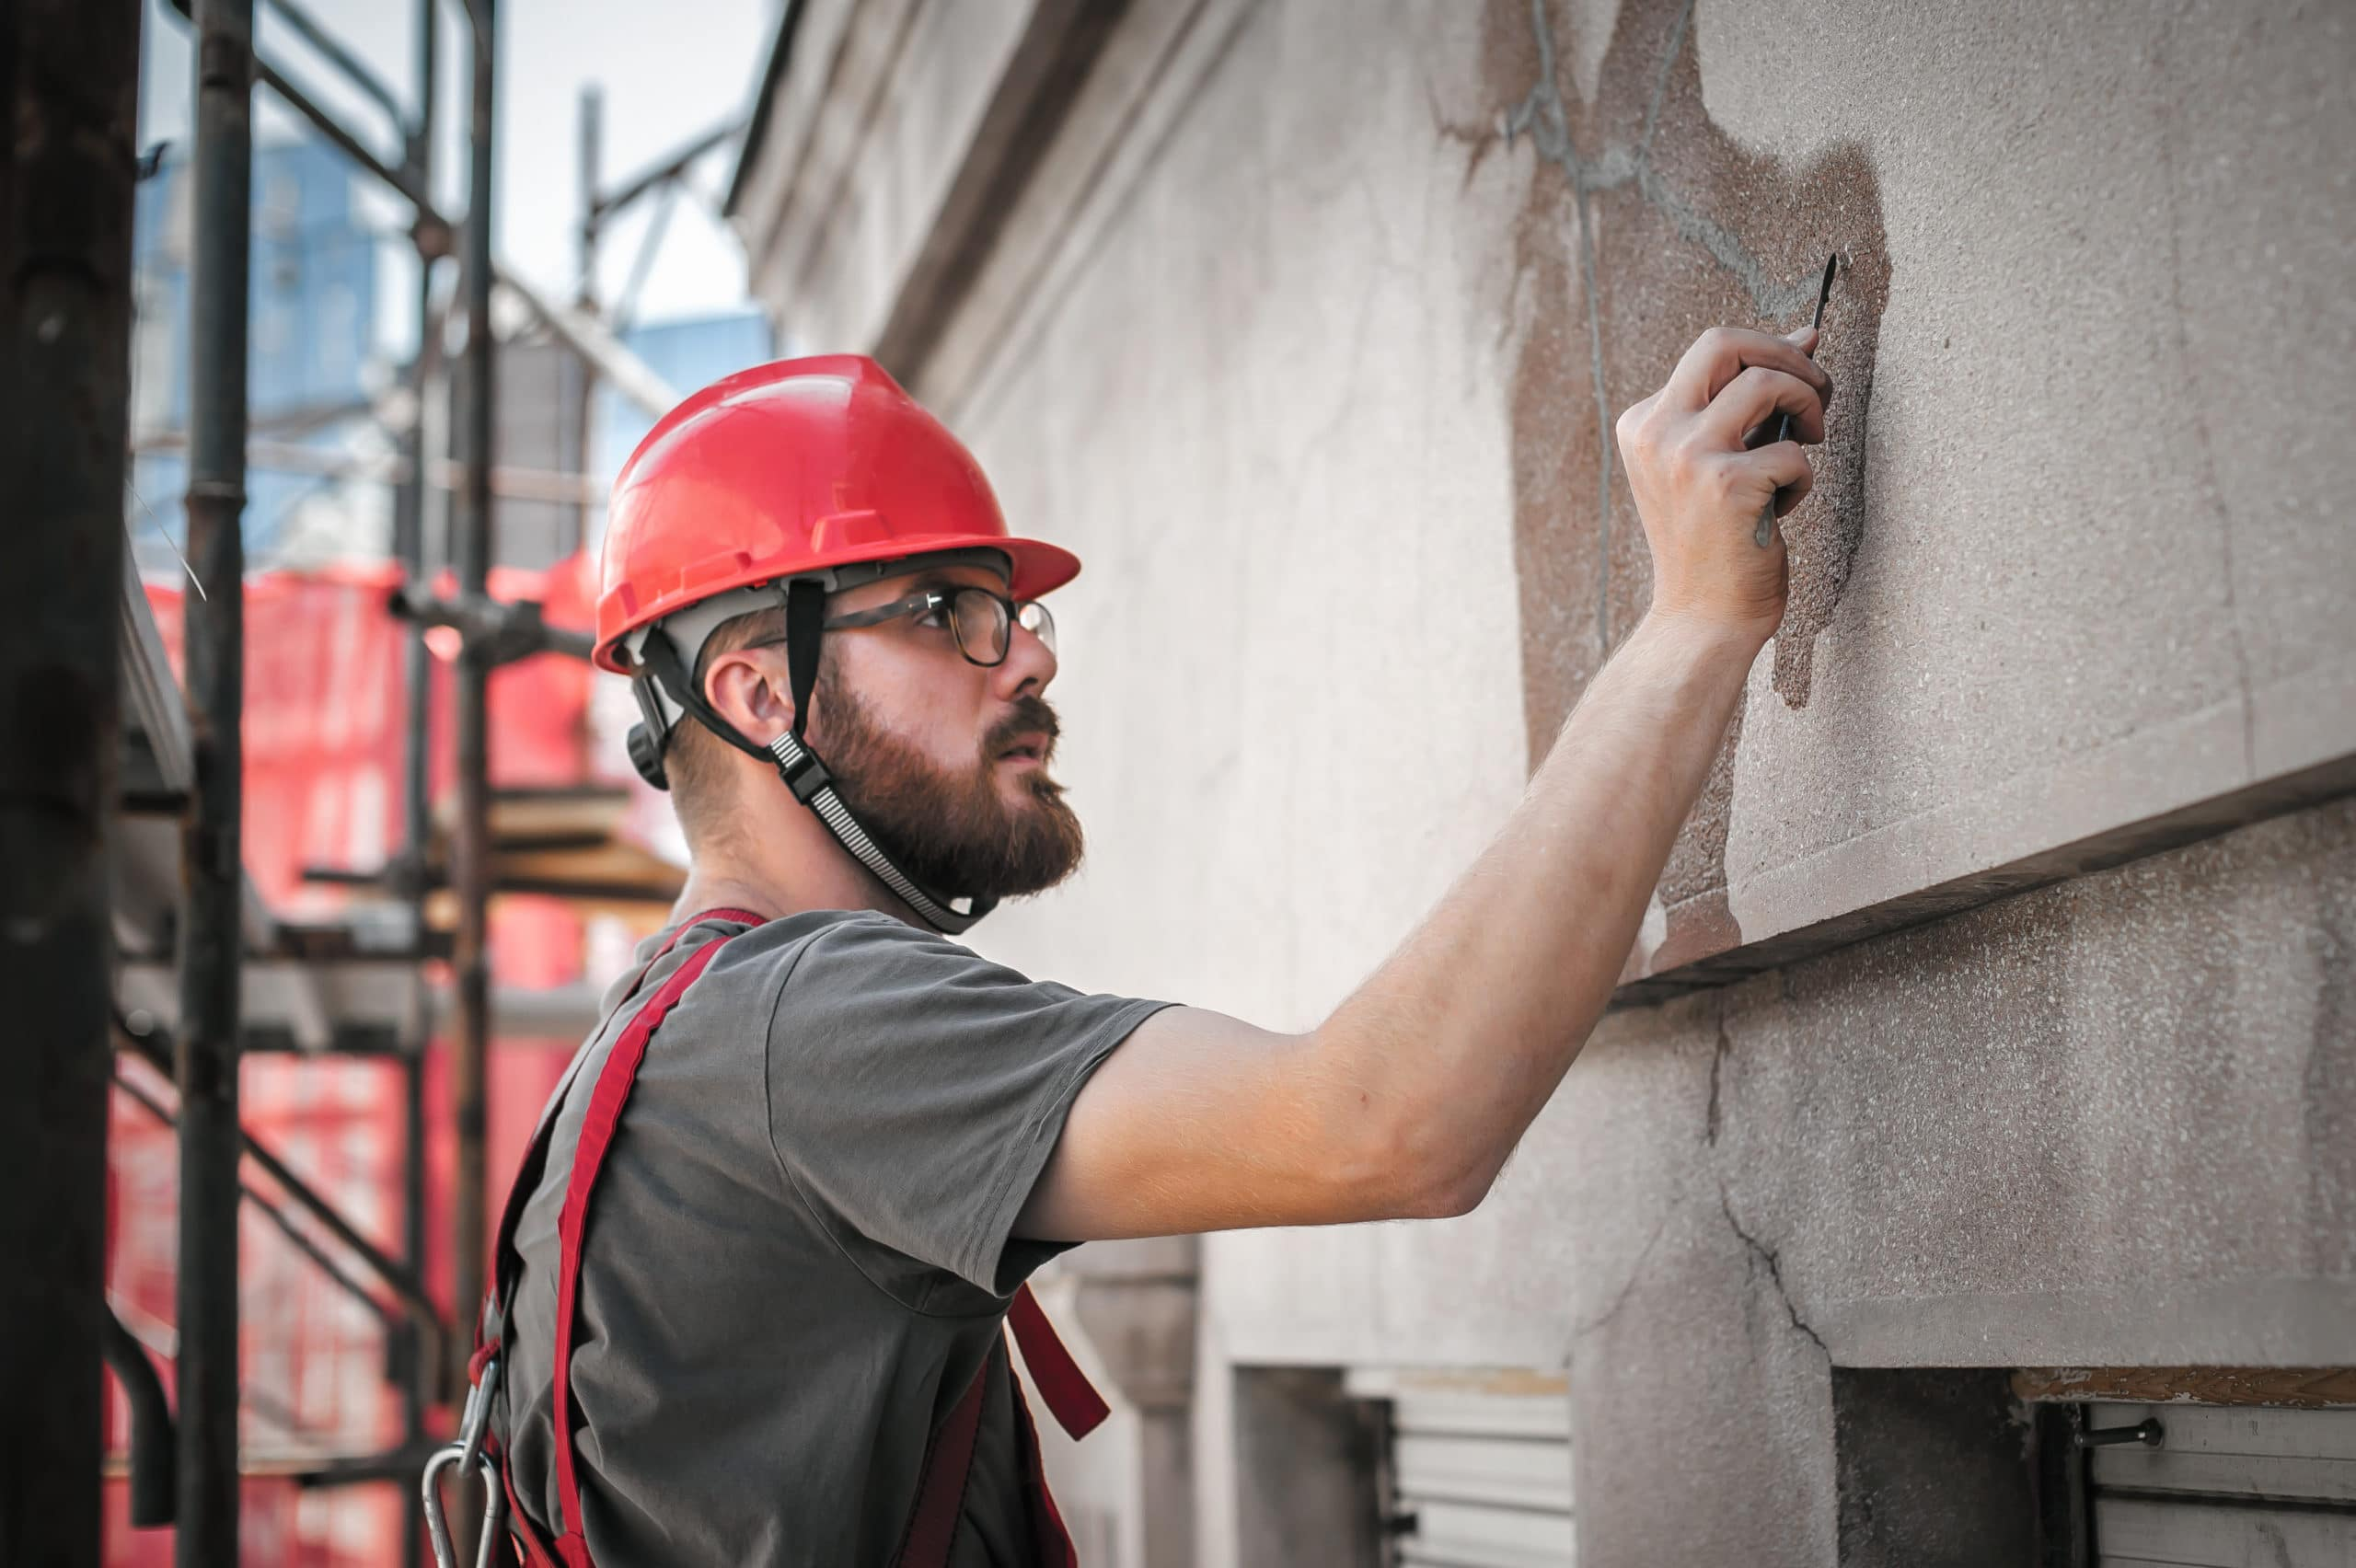 Restoration professional standing on a scaffold and repairing the exterior of a building